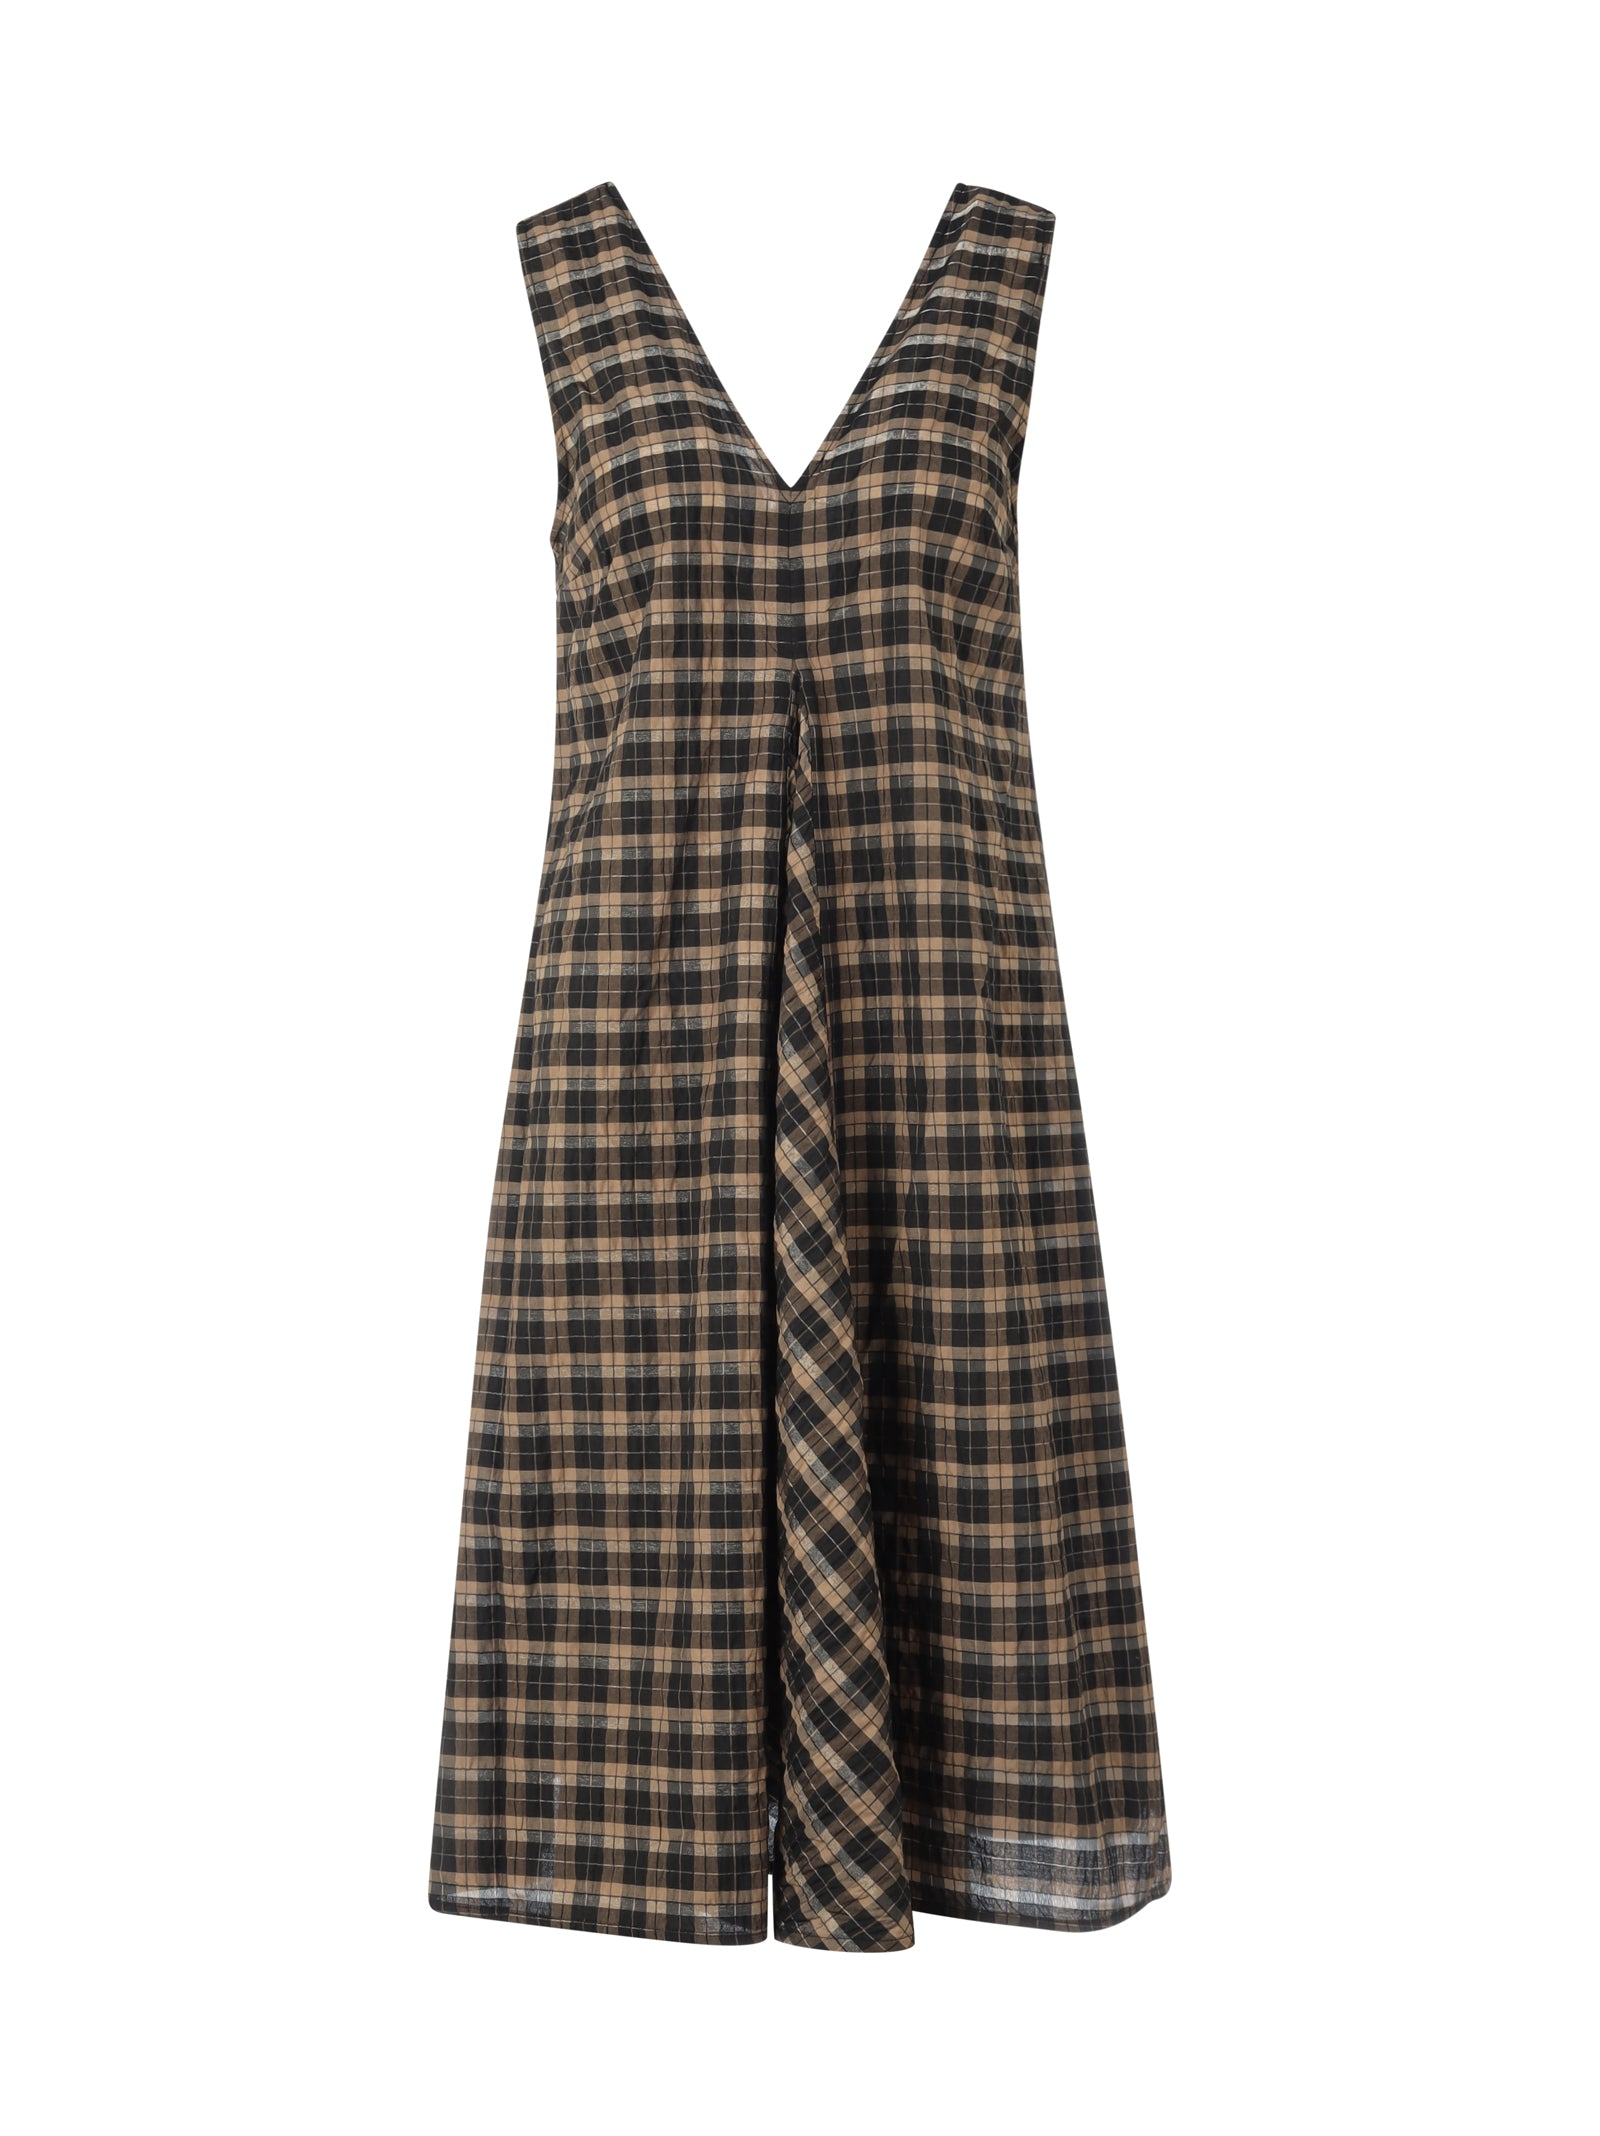 SEERSUCKER CHECK DRESS